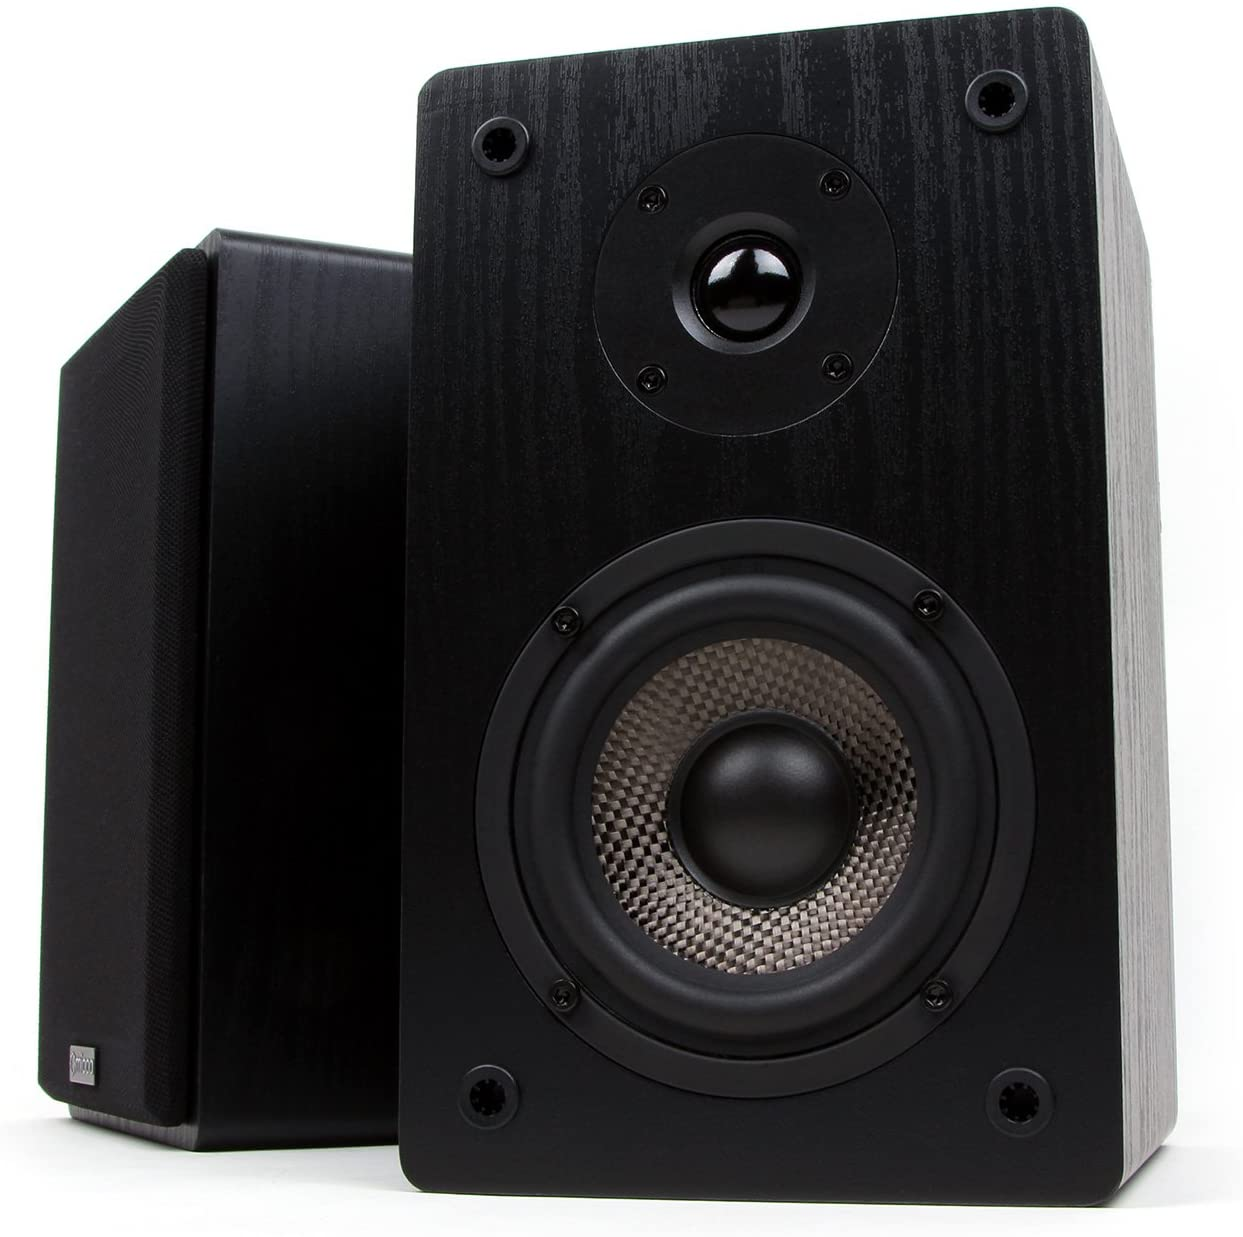 Micca MB42 Bookshelf Speakers, Passive, Not for Turntable, Needs Amplifier or Receiver, 4-Inch Carbon Fiber Woofer and Silk Dome Tweeter